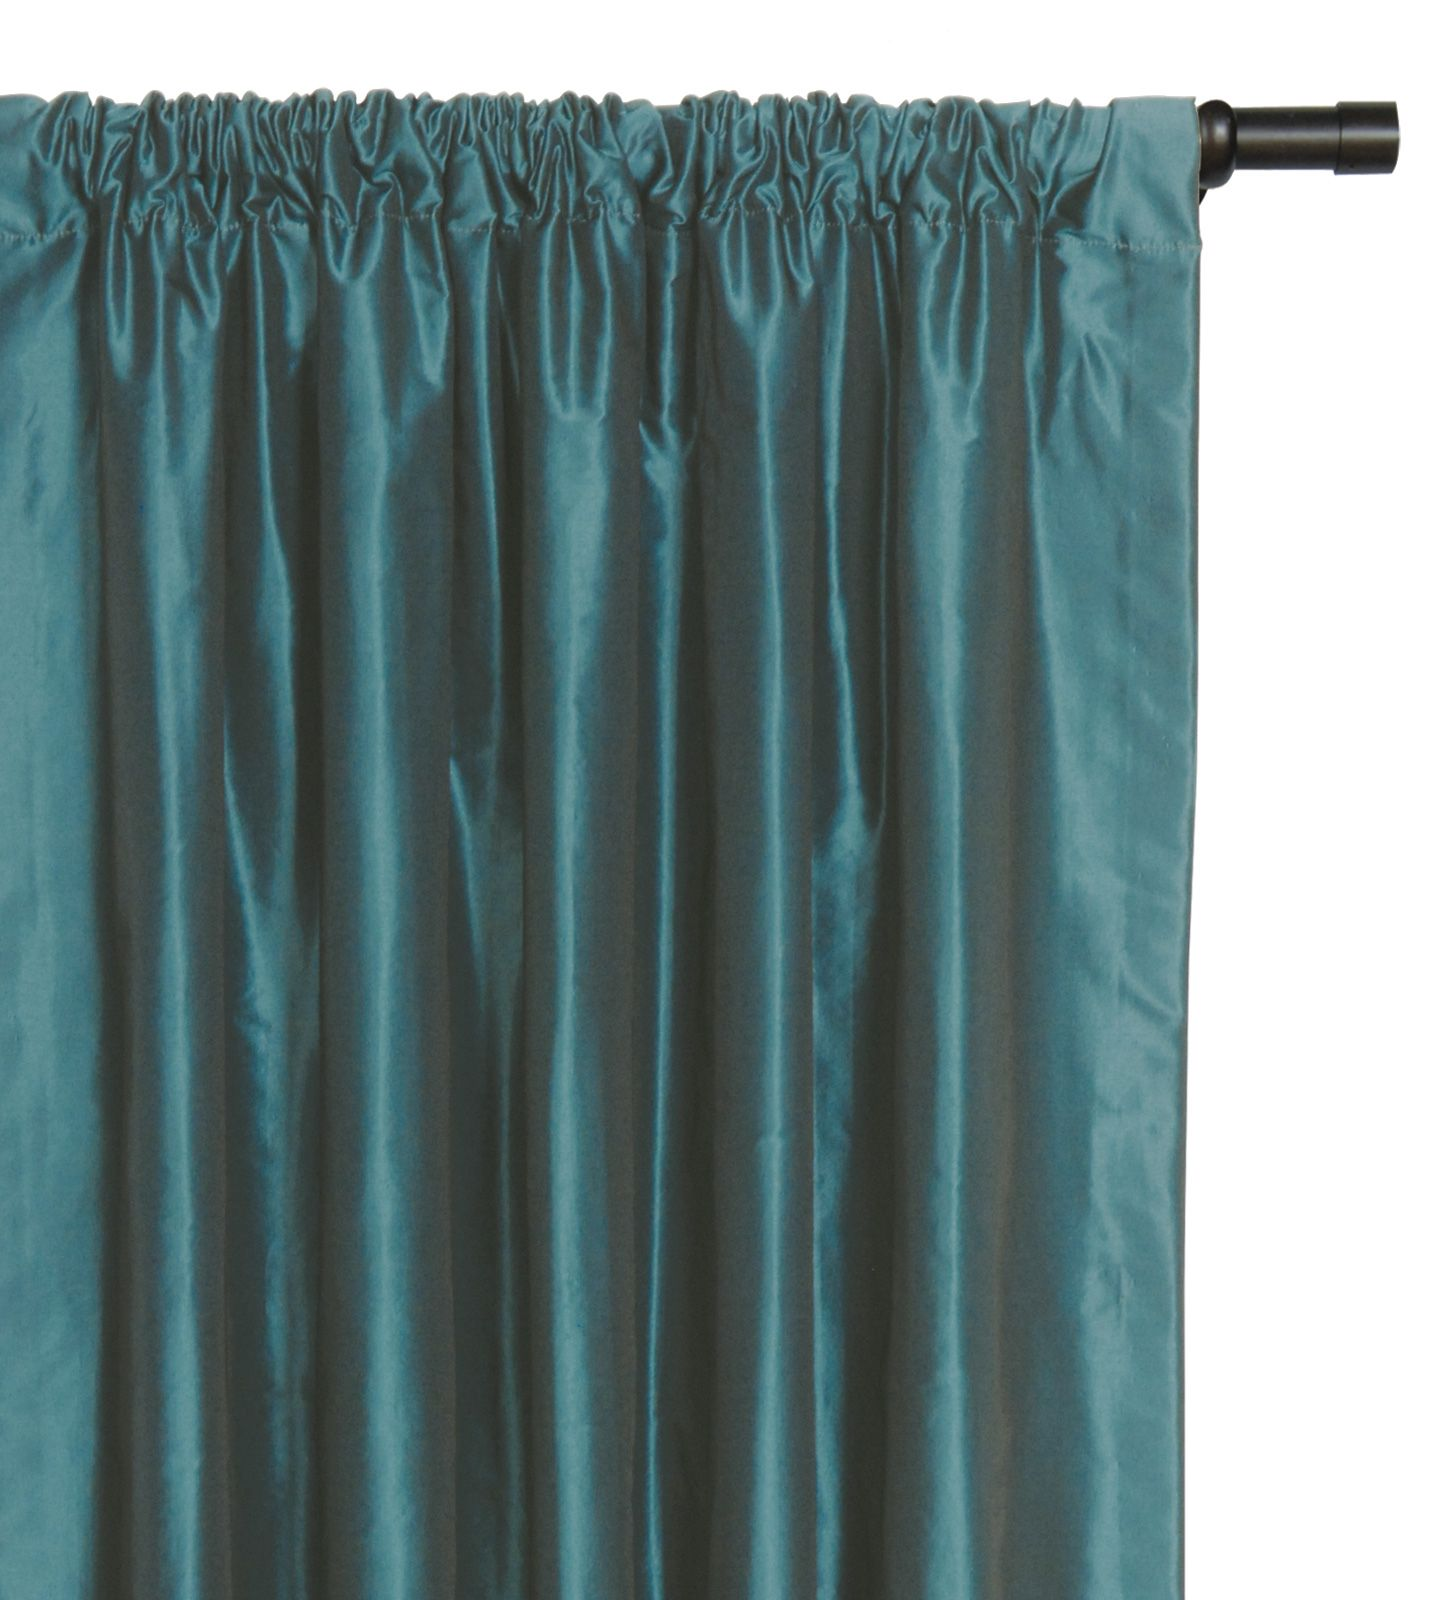 Teal Drapes Panels Luxury Bedding By Eastern Accents FREDA TEAL CURTAIN P